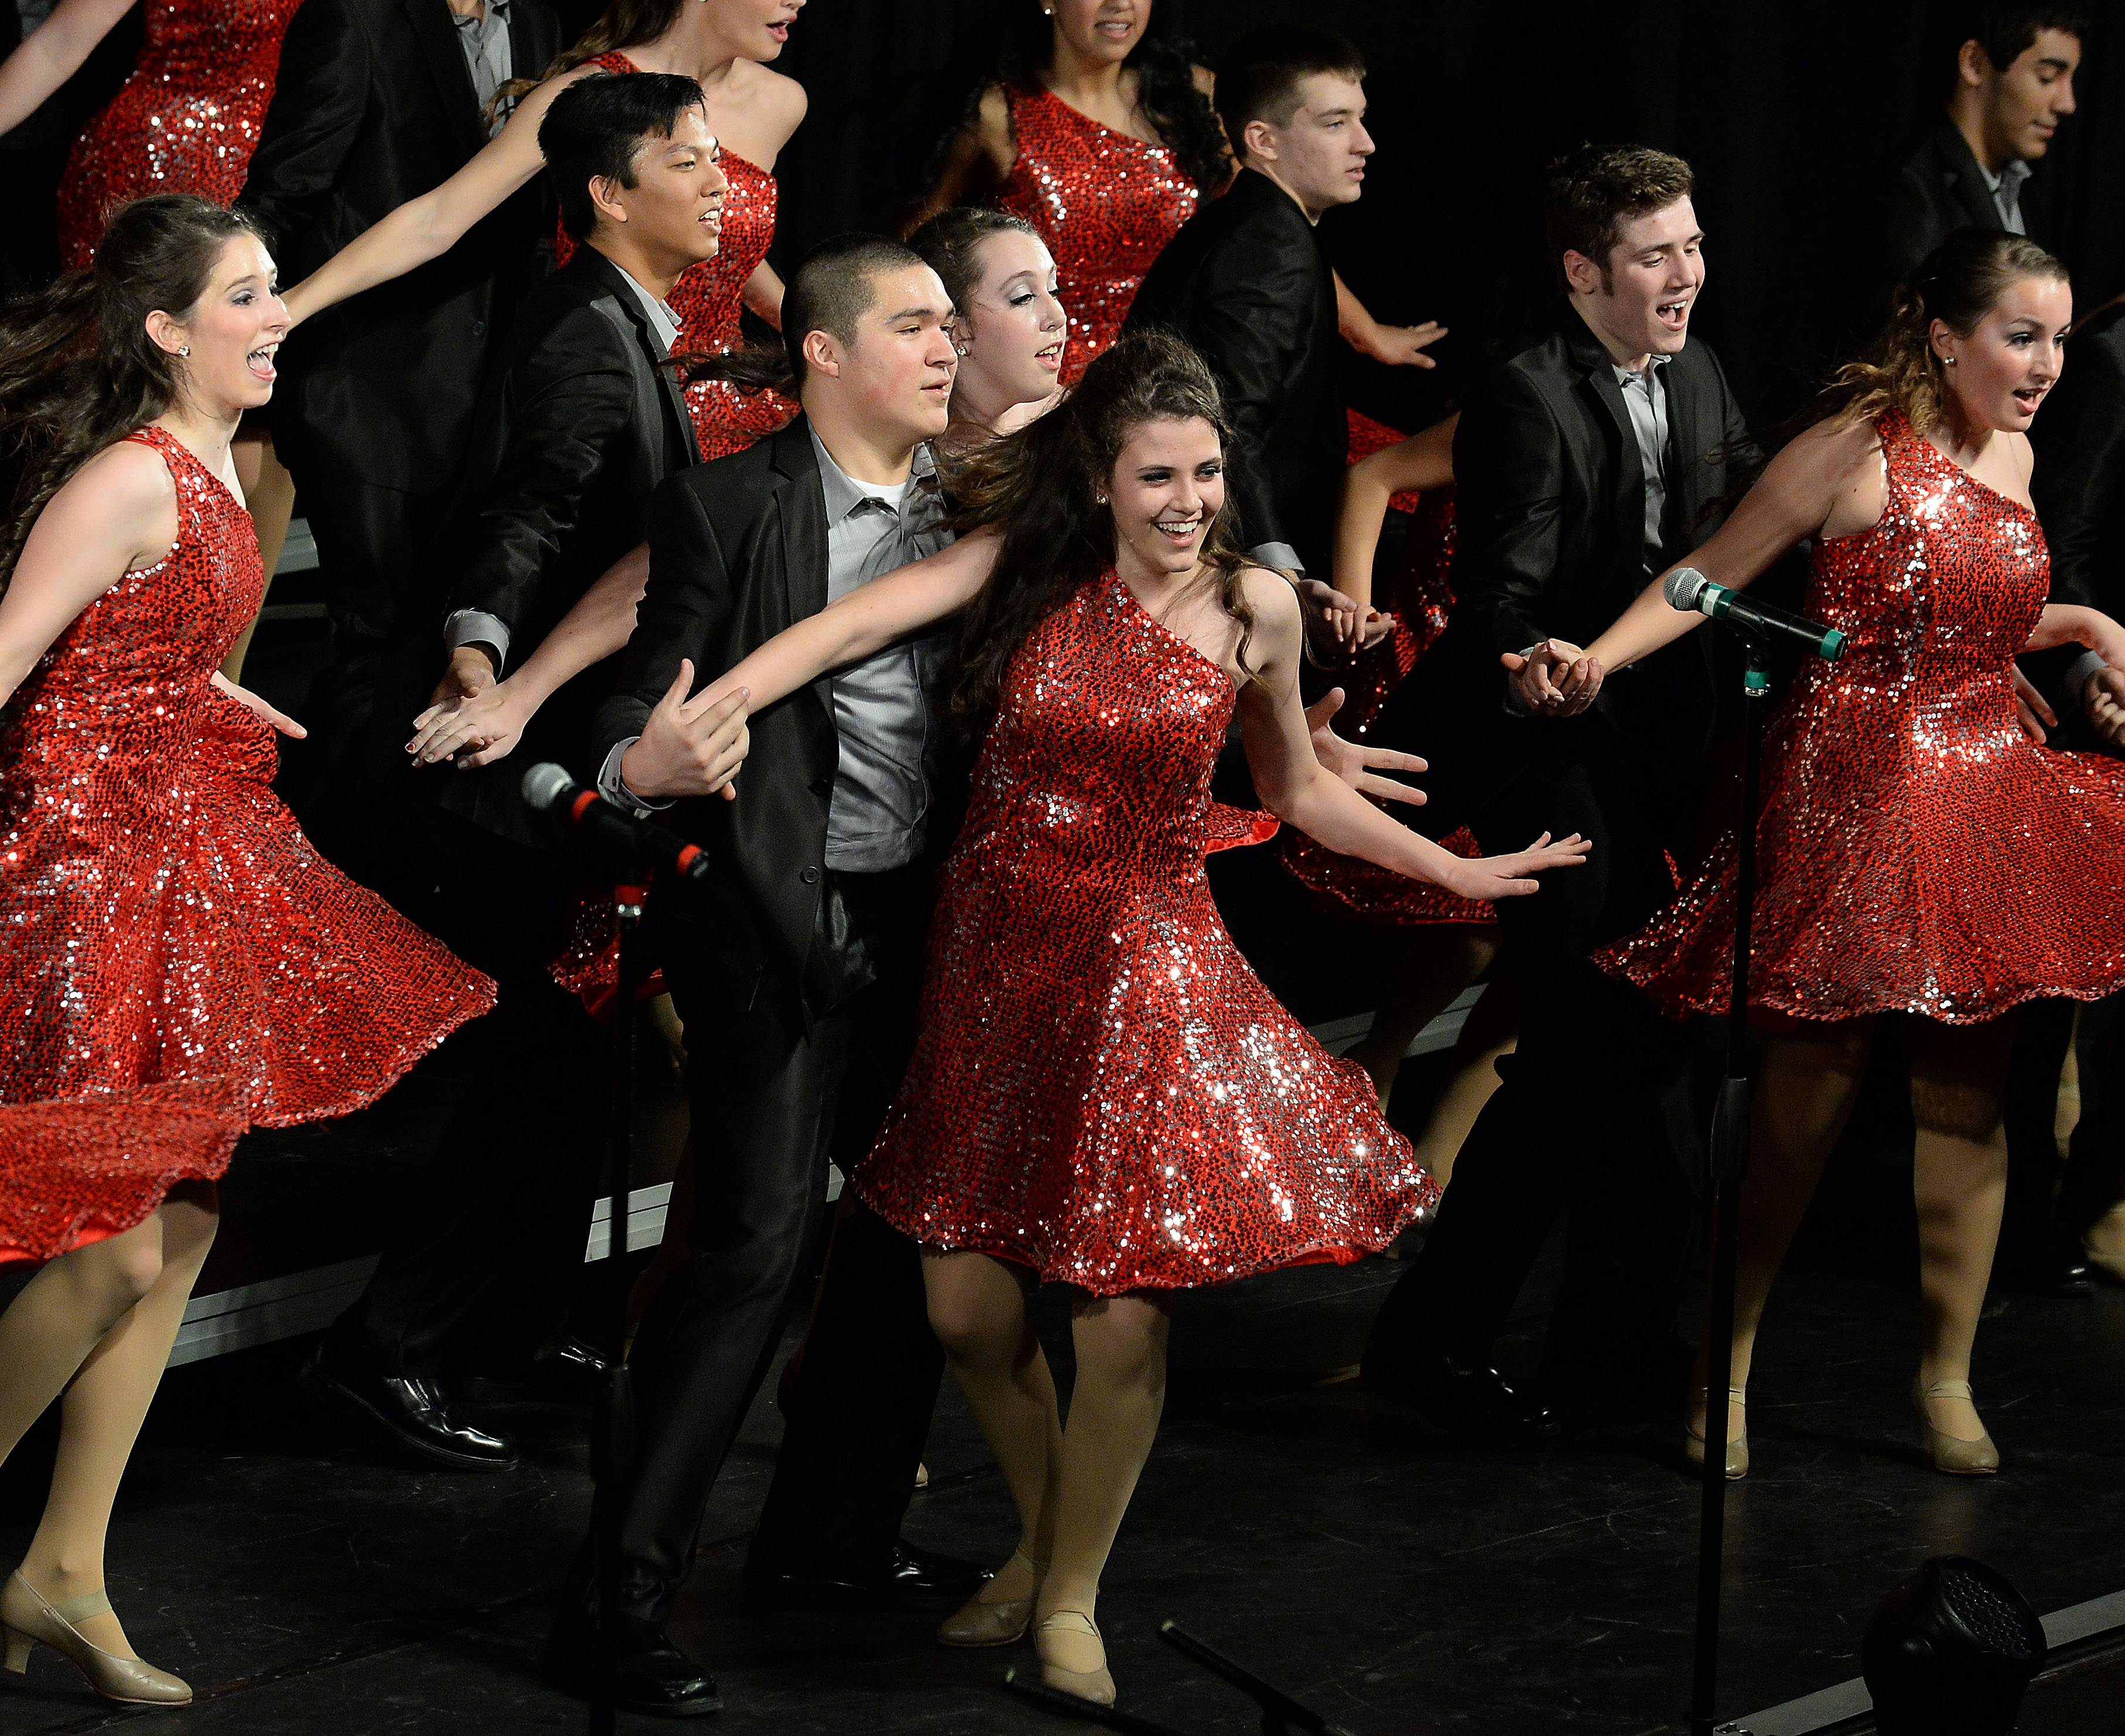 Maggie Monaxios sings and dances with partner Sam Yoshino during a performance by Legacy, the Wheeling High School show choir, at Chicagoland Showcase on Saturday. The show choir competition was held at Hersey High School in Arlington Heights.